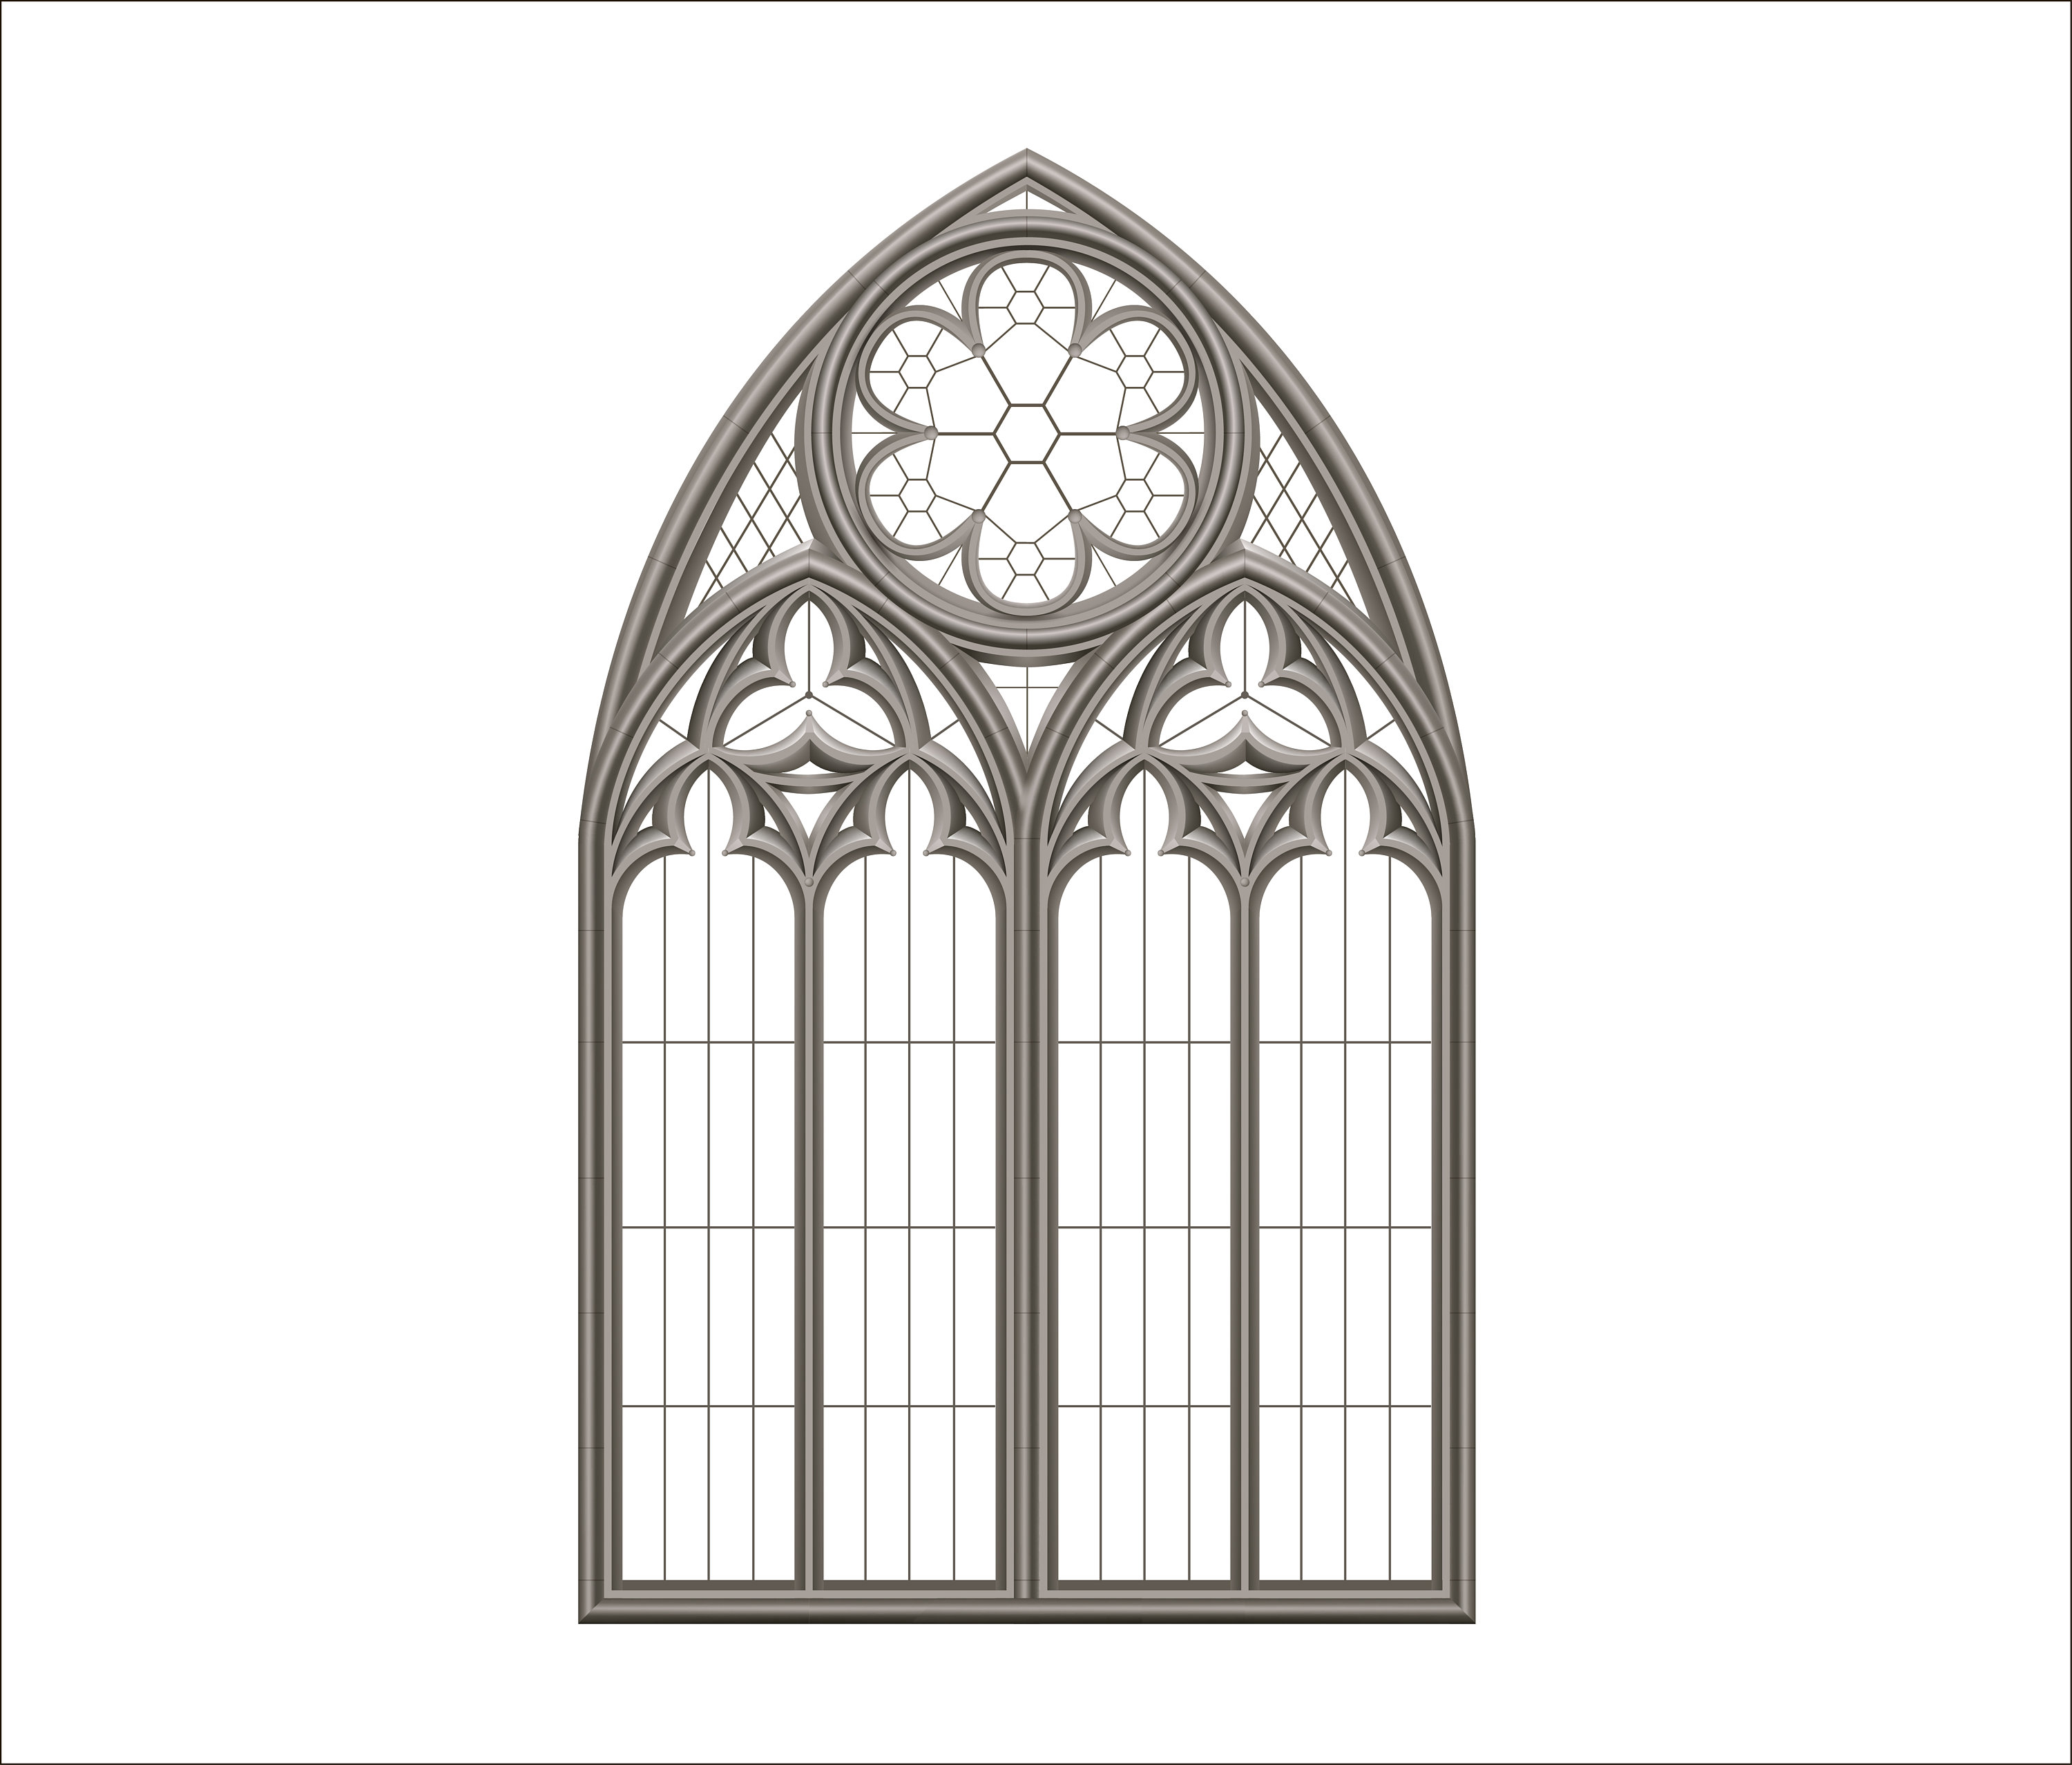 Gothic old window. Temple, castle, palace, architecture. Building and  facades. Pdf, png, eps, jpeg. Stained glass window.